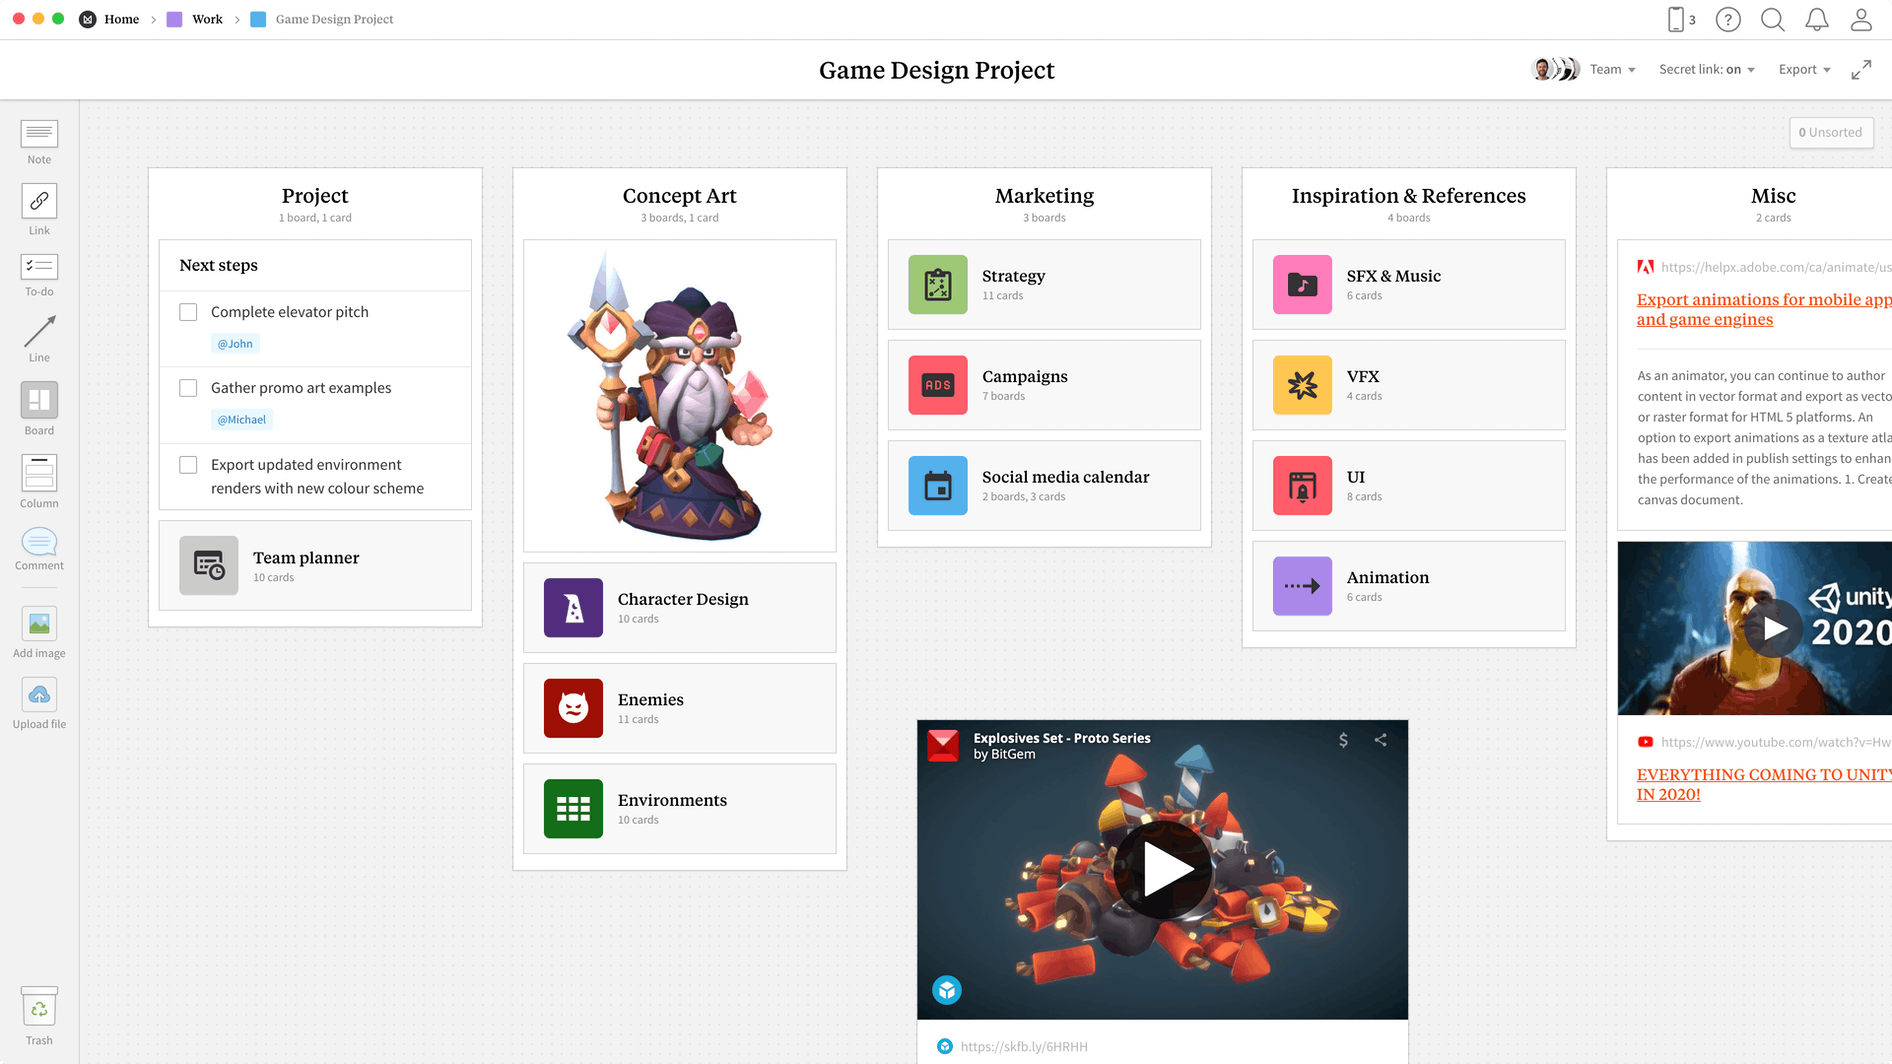 Game Design Project Template, within the Milanote app